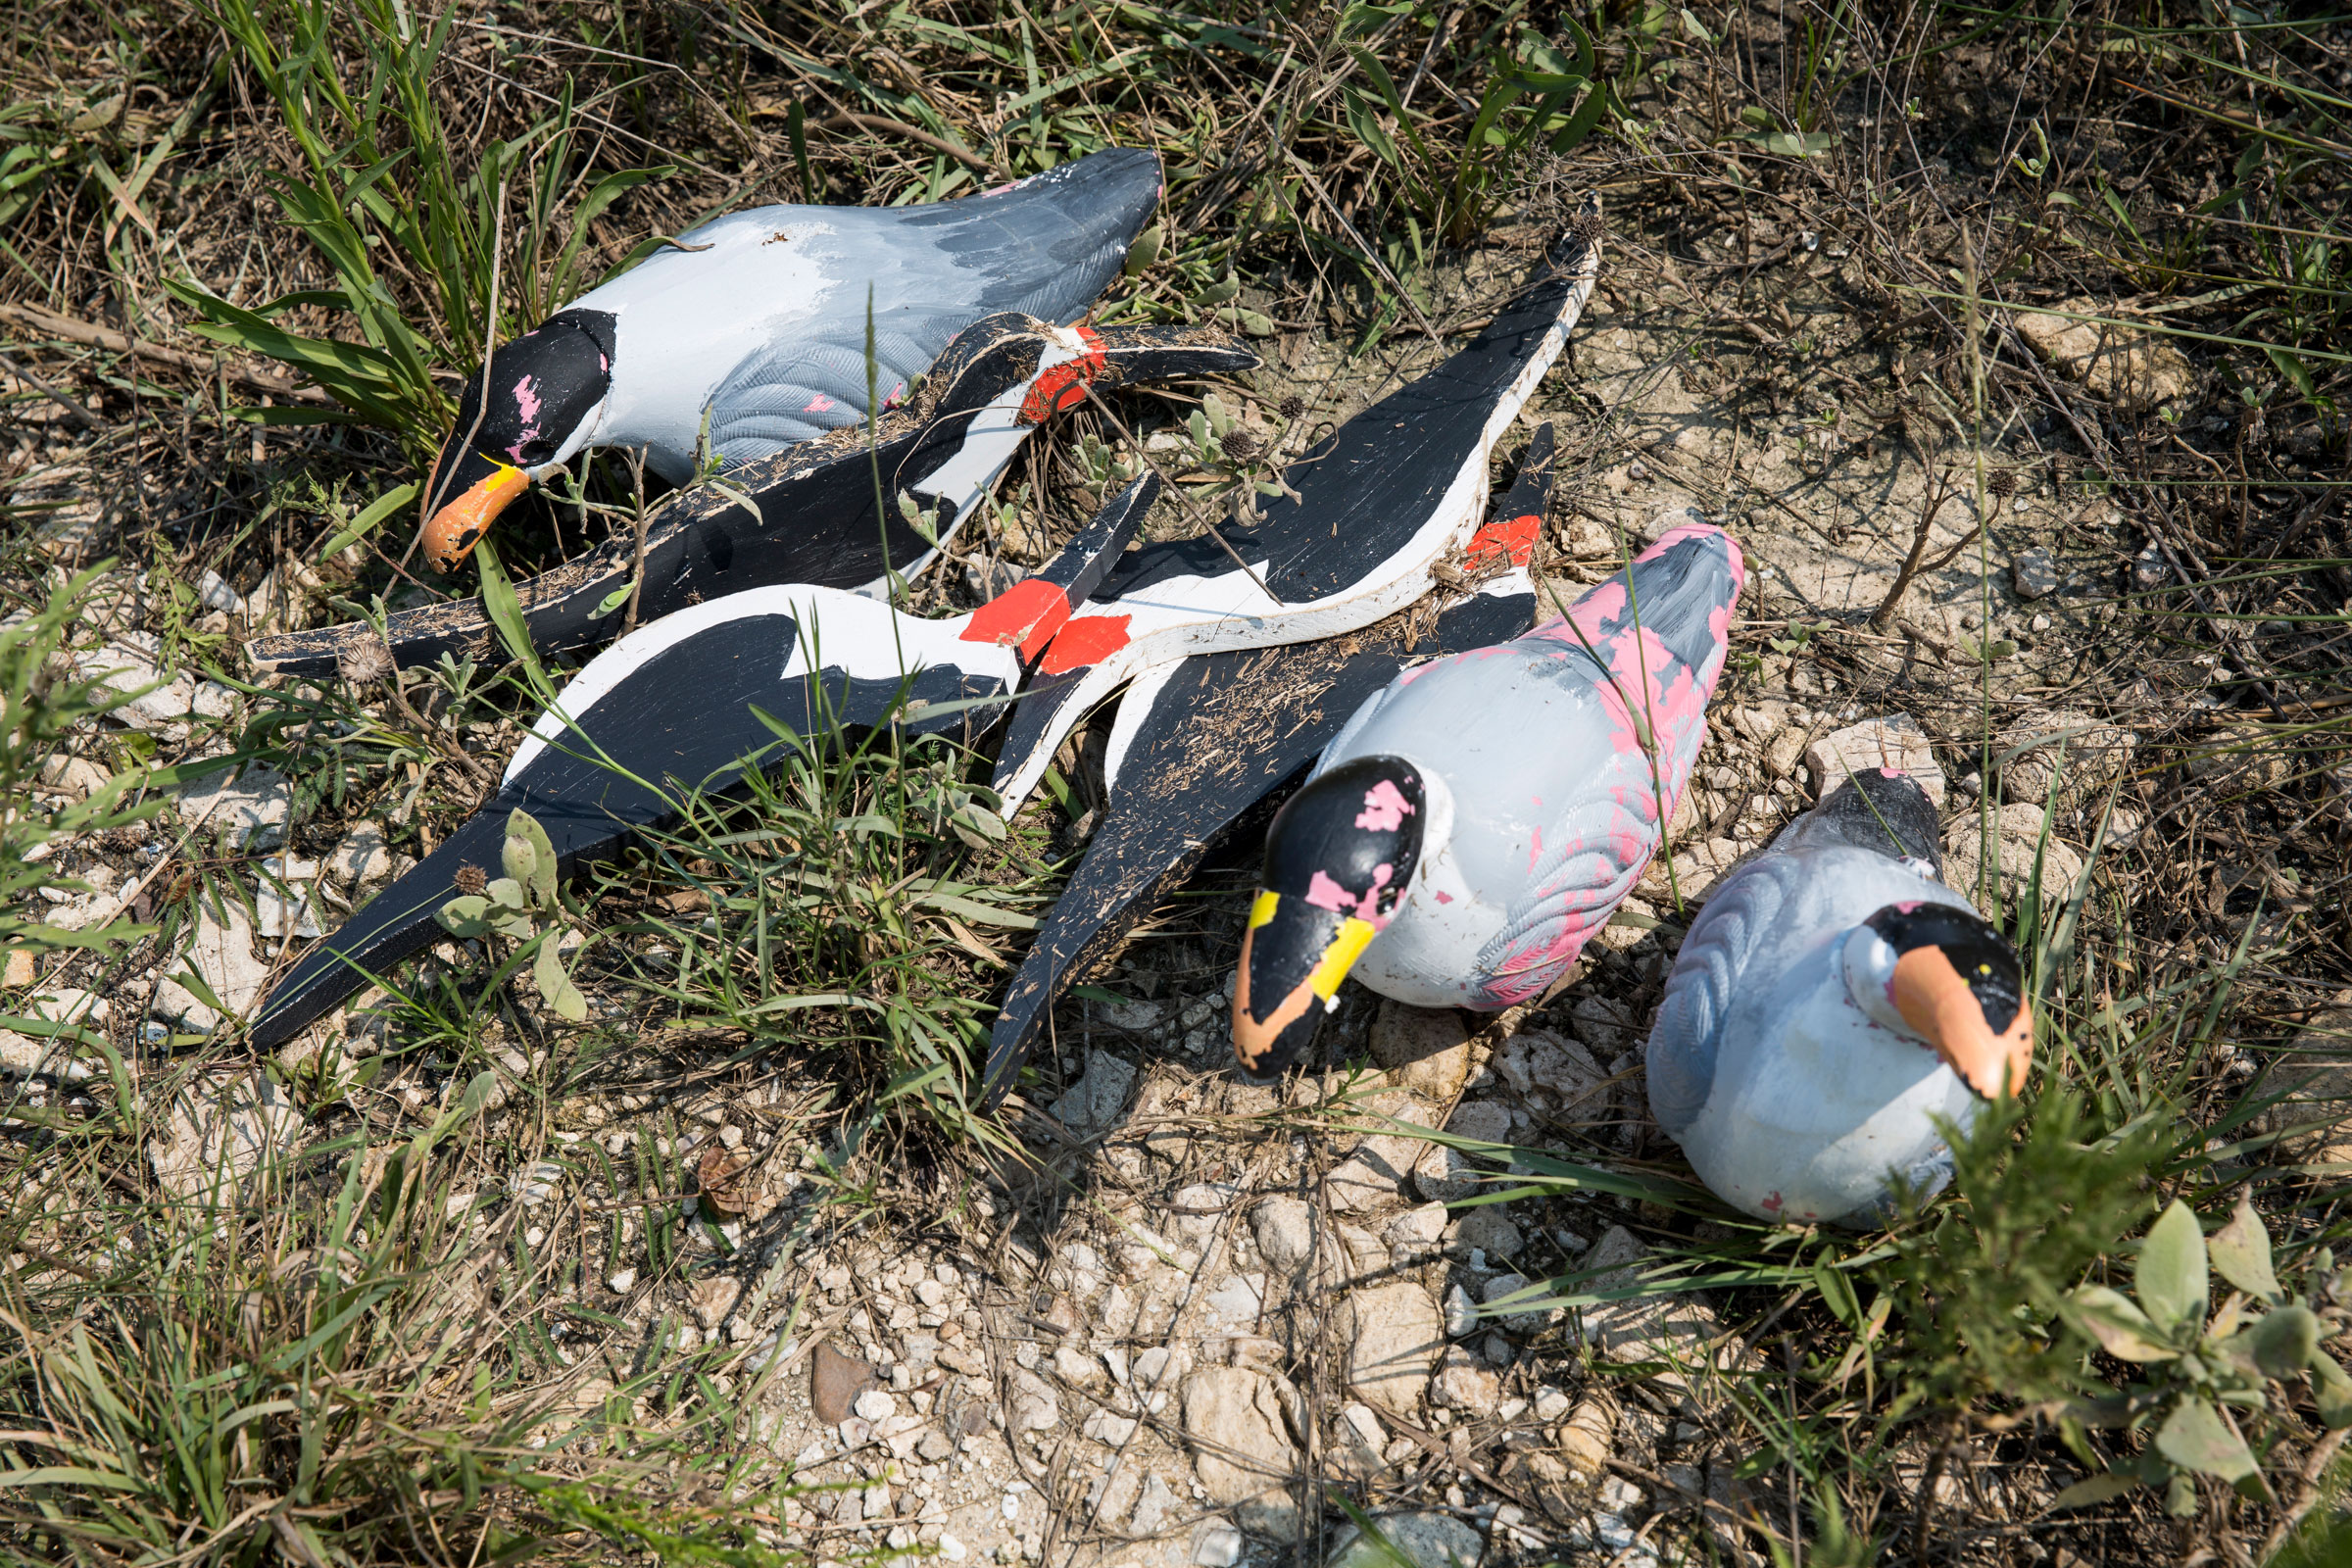 Decoys are used to attract birds like Black Skimmers and Royal Terns to new, safer nesting grounds. These decoys were blown away during the storm. Scott Dalton